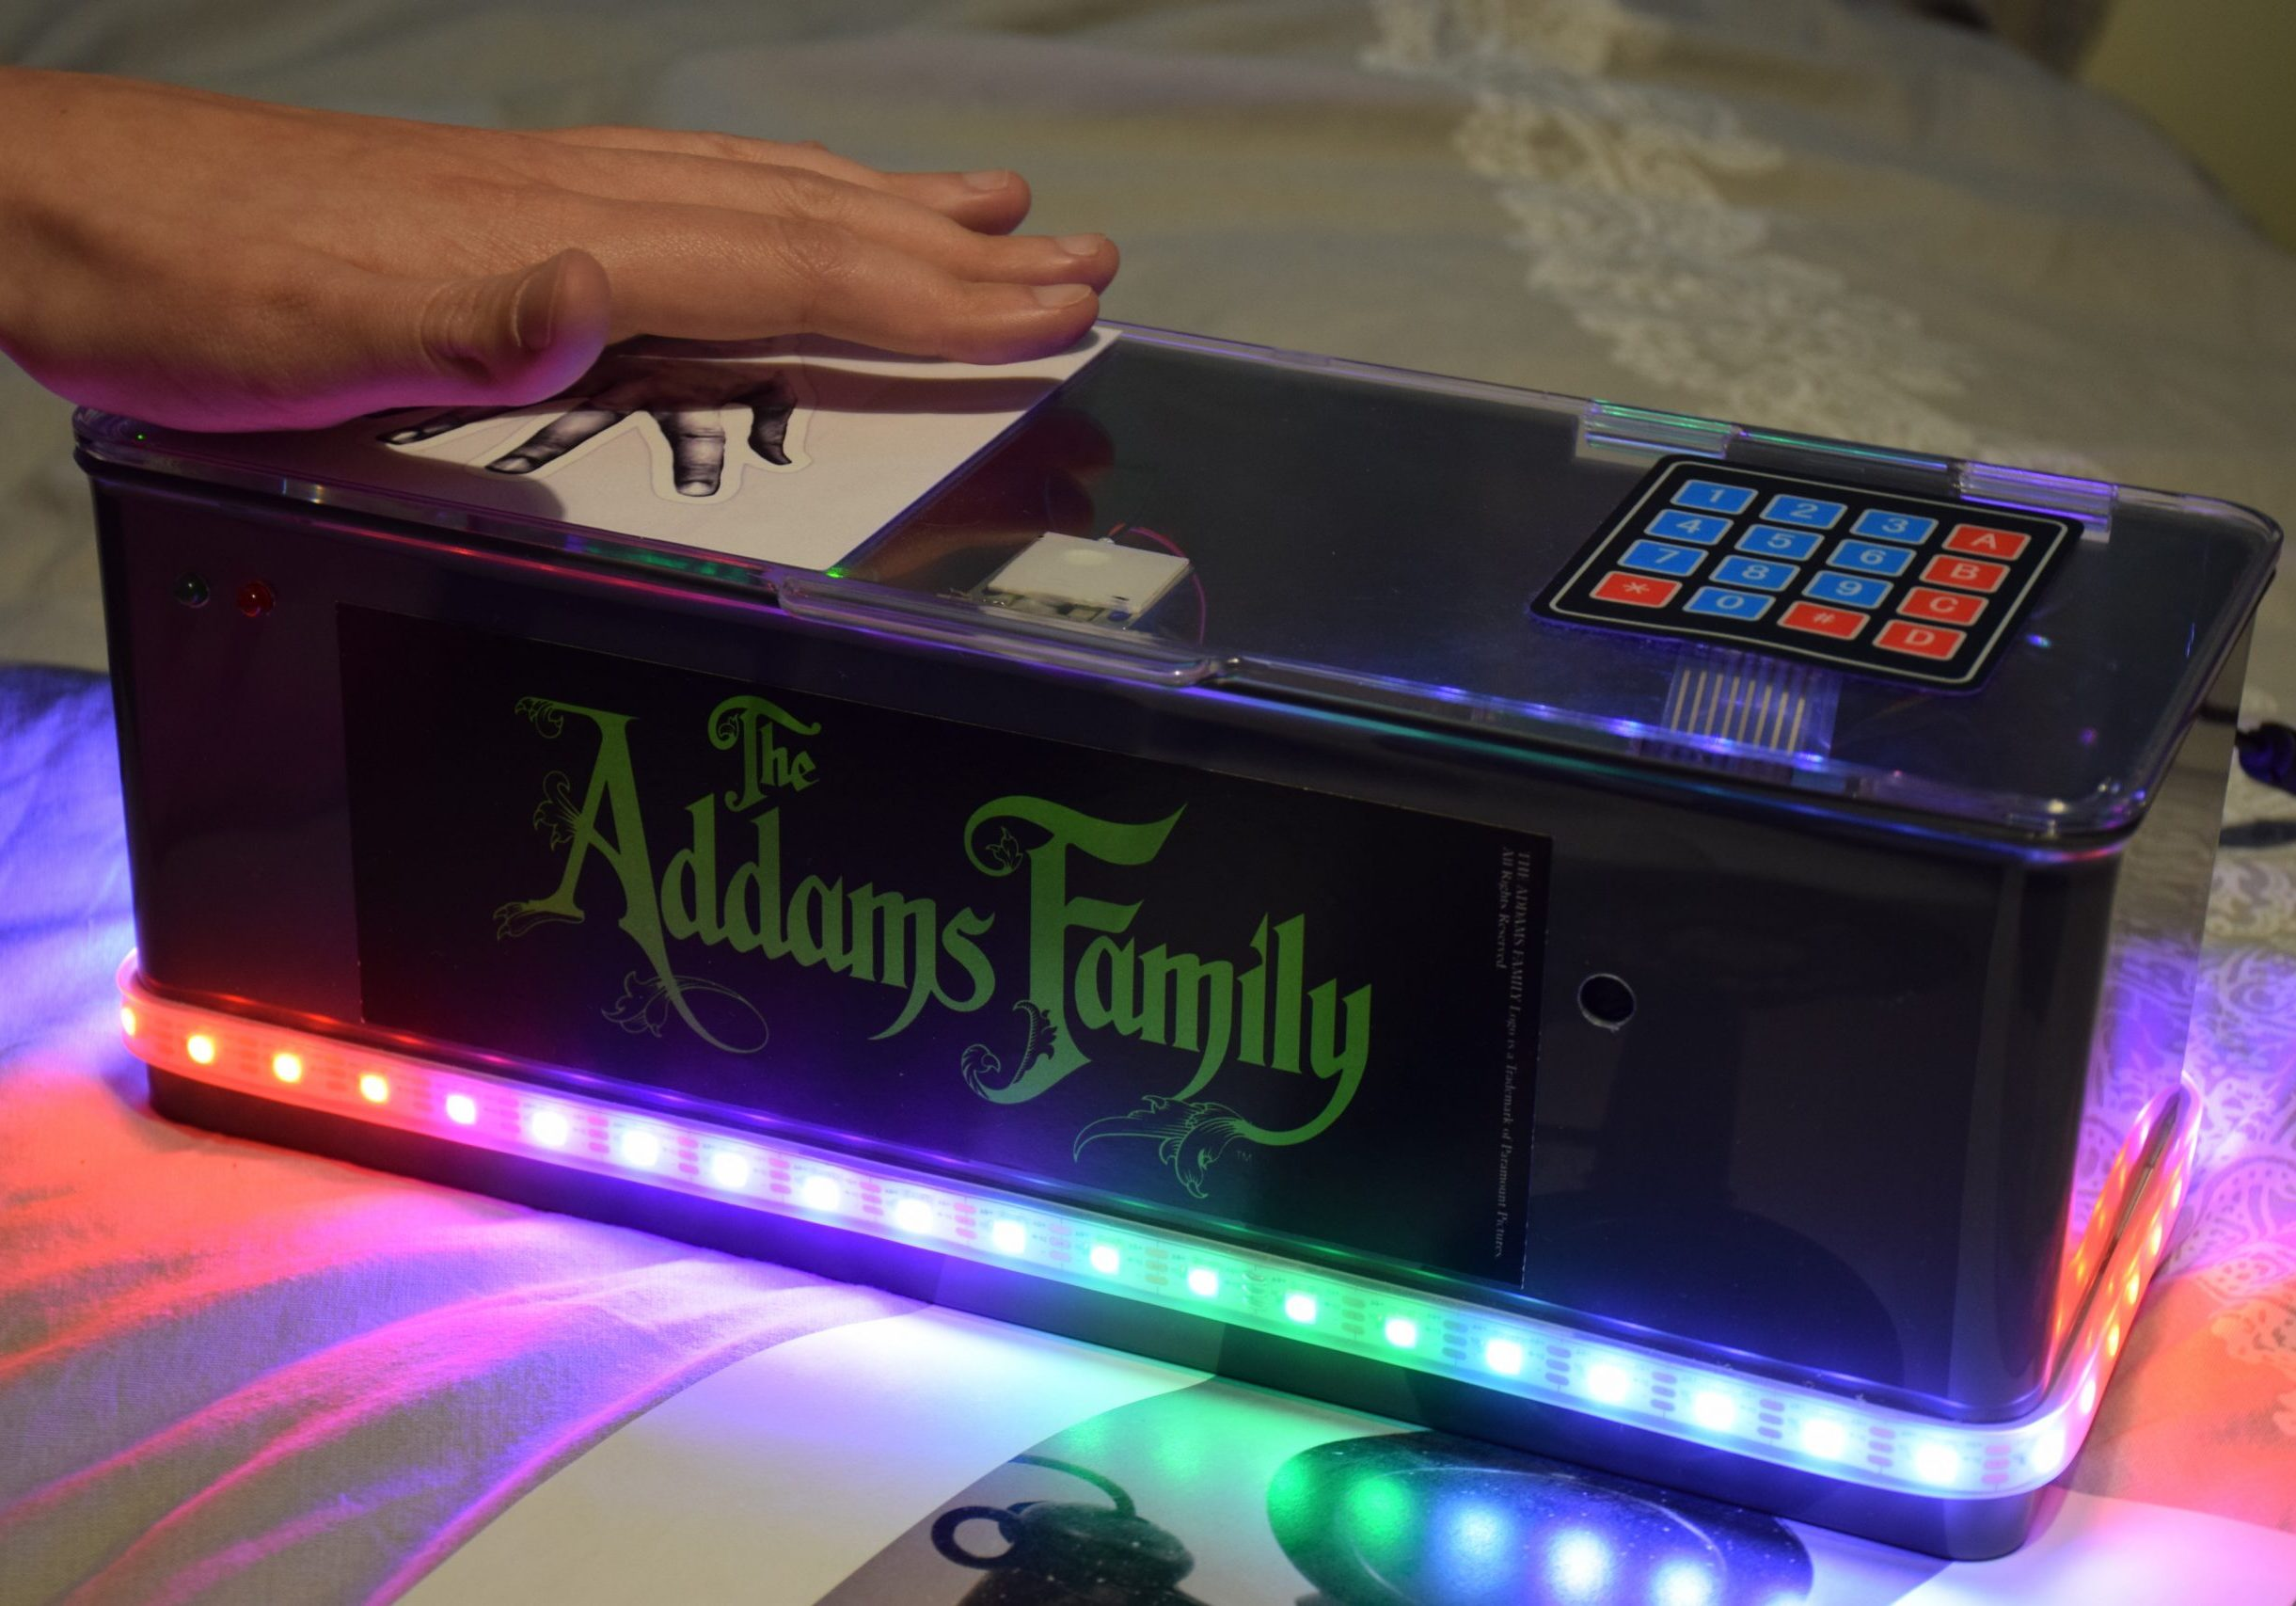 Photograph of puzzle box with Addams Family label on front and strip of coloured LED lights illuminated with matrix keypad and image of hand on top being controlled by a users hand